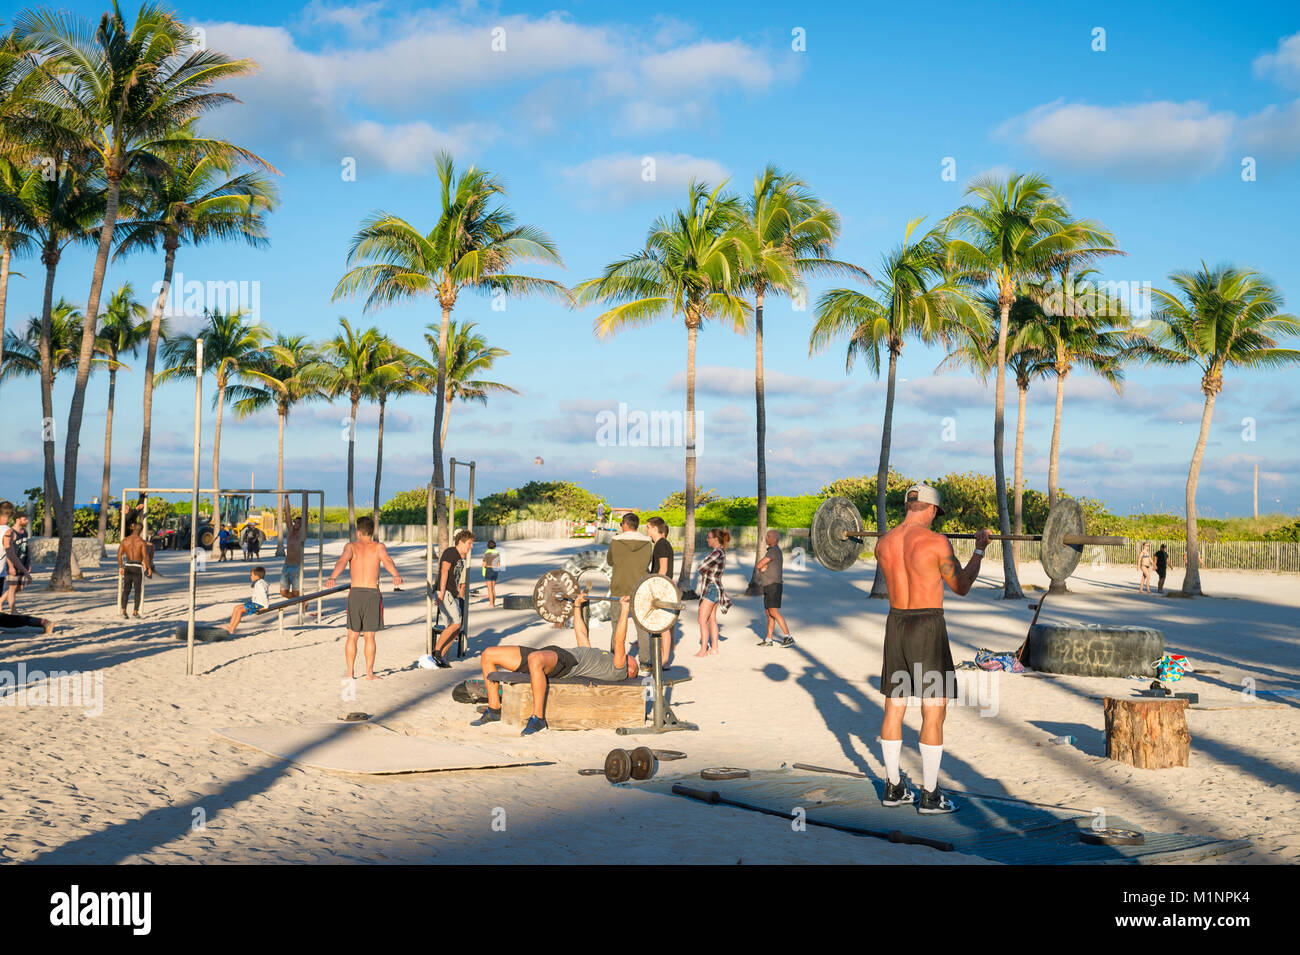 MIAMI - DECEMBER 27, 2017: Muscular young men work out at the outdoor workout station in Lummus Park known as Muscle - Stock Image